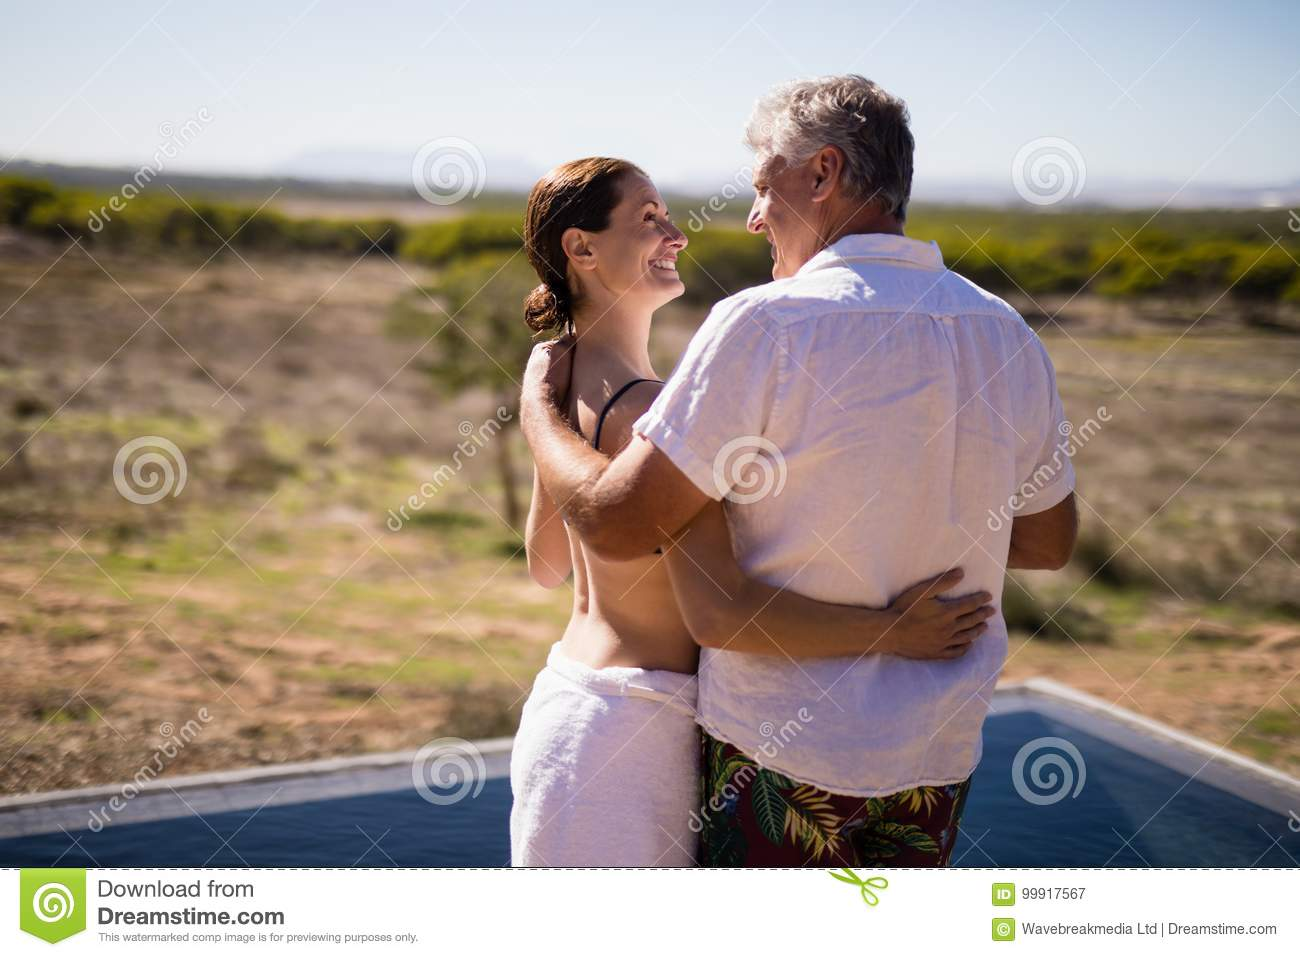 Smiling couple embracing near poolside